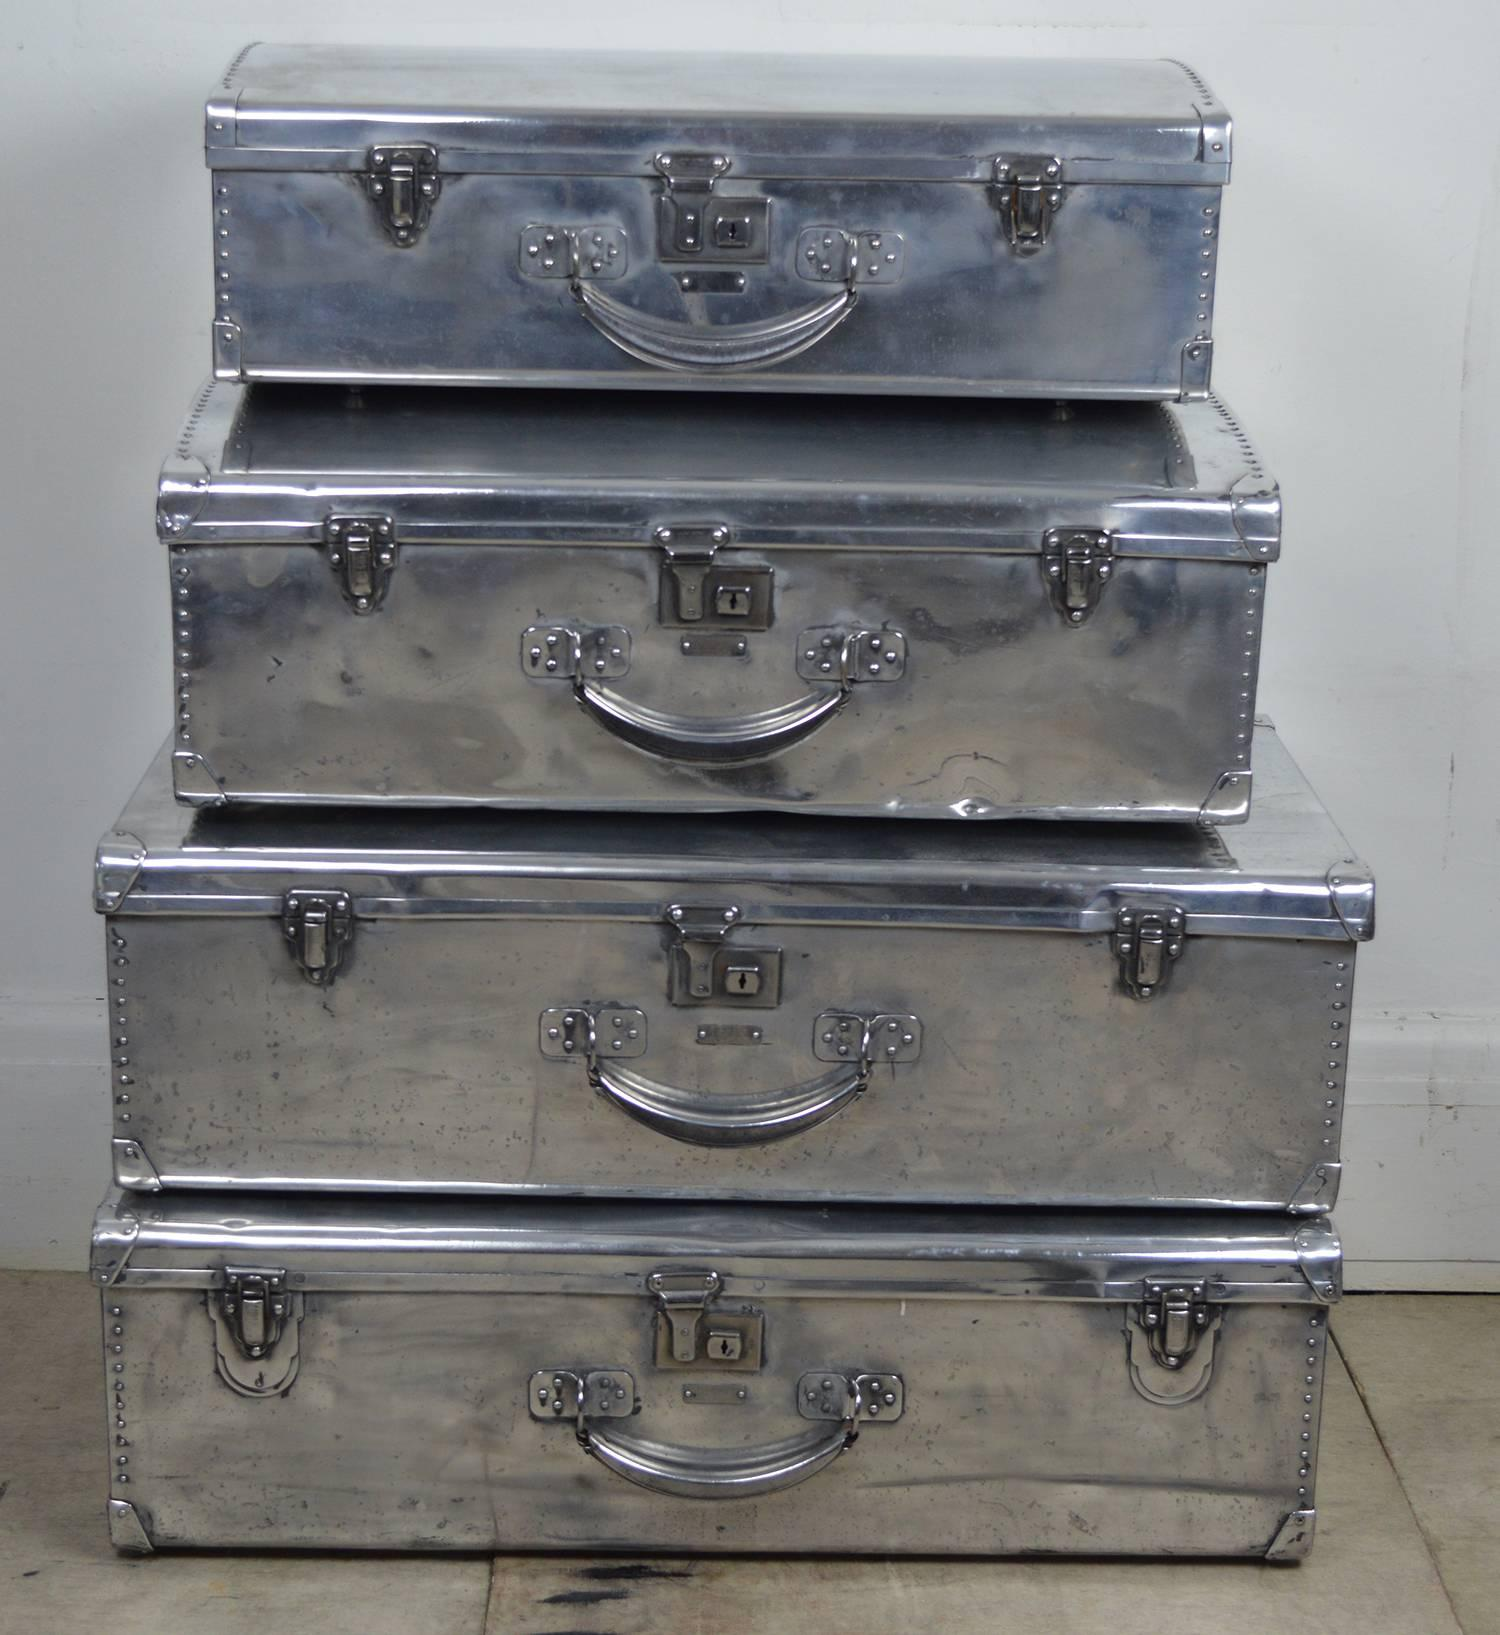 cost again little luggage more mention suitcase around me whole and this drawers lot a chest paint for creation the detail of i furniture piece clasps did with